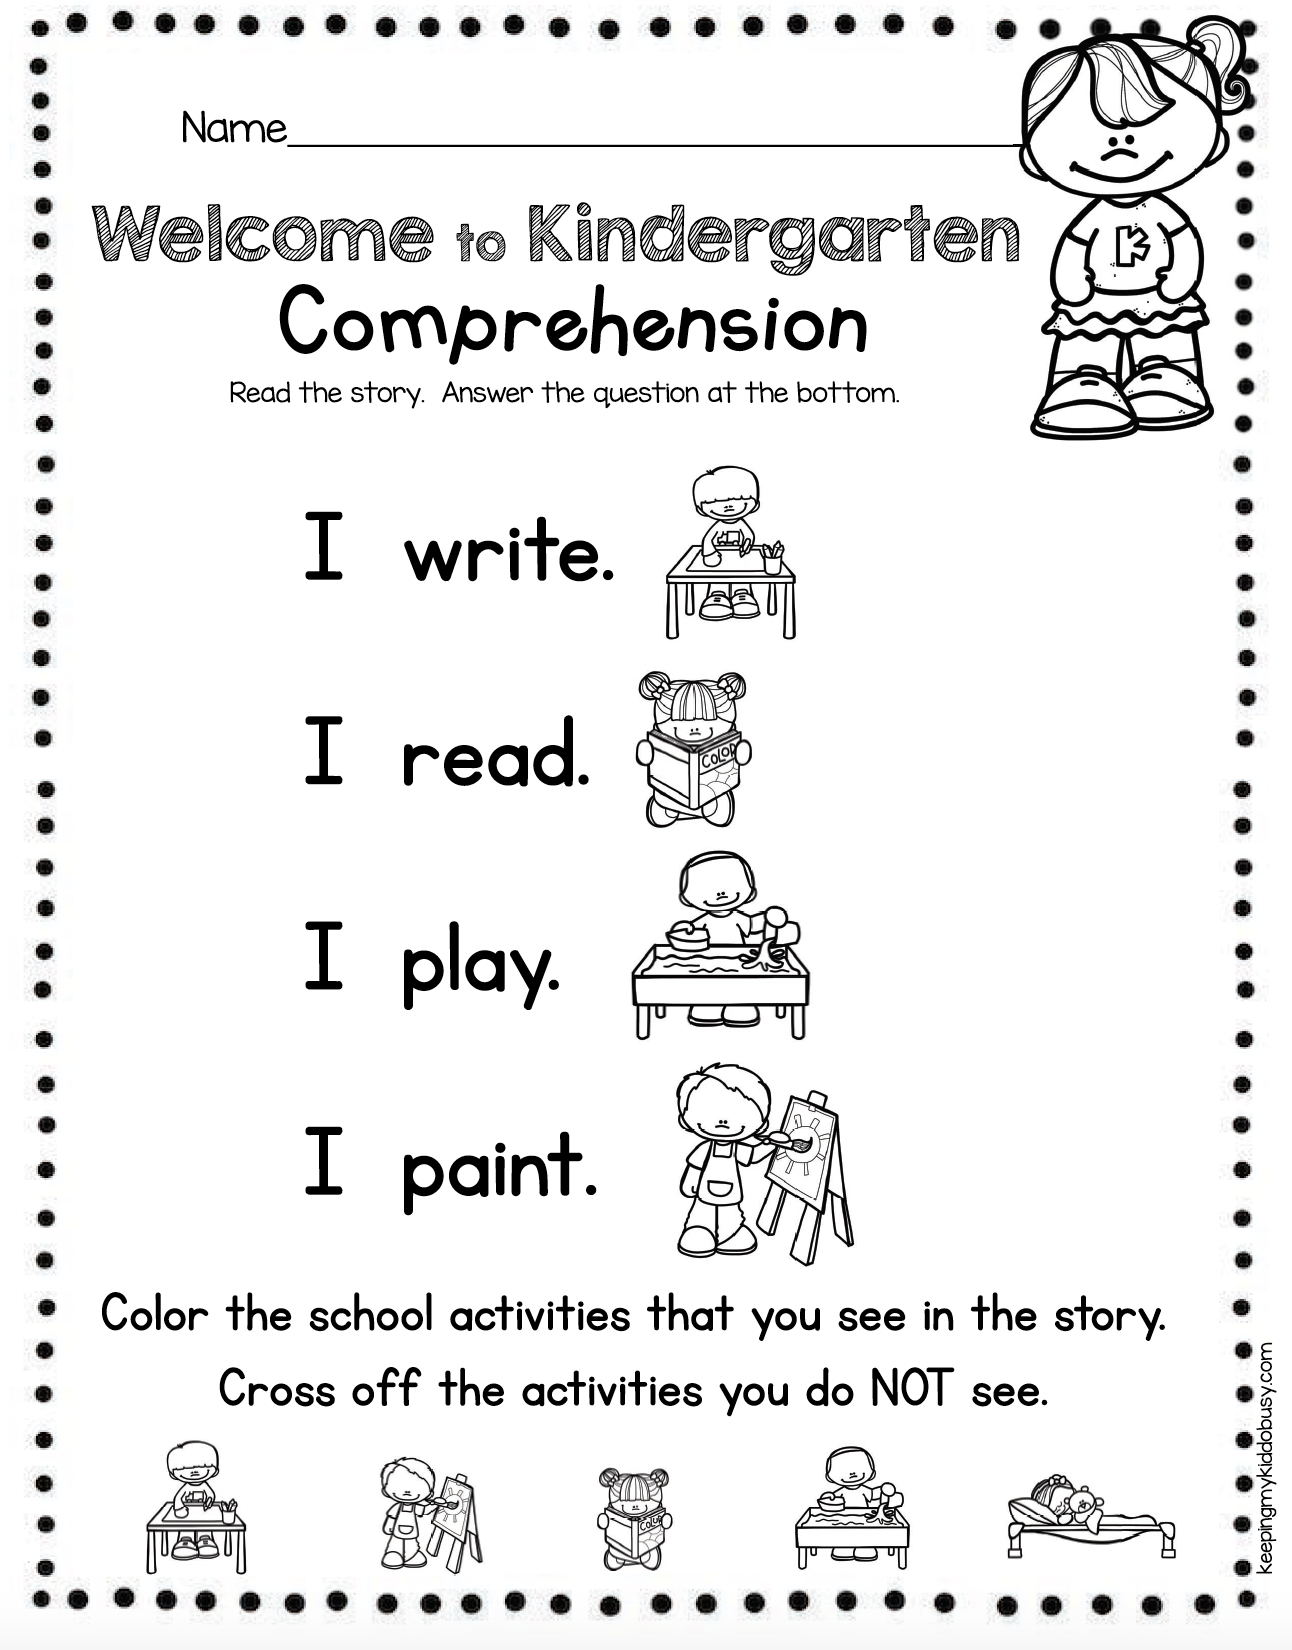 Reading And Writing Back To School In Kindergarten Free Week Keeping My Kiddo Busy Writing Sight Words Welcome To Kindergarten Words [ 1650 x 1292 Pixel ]